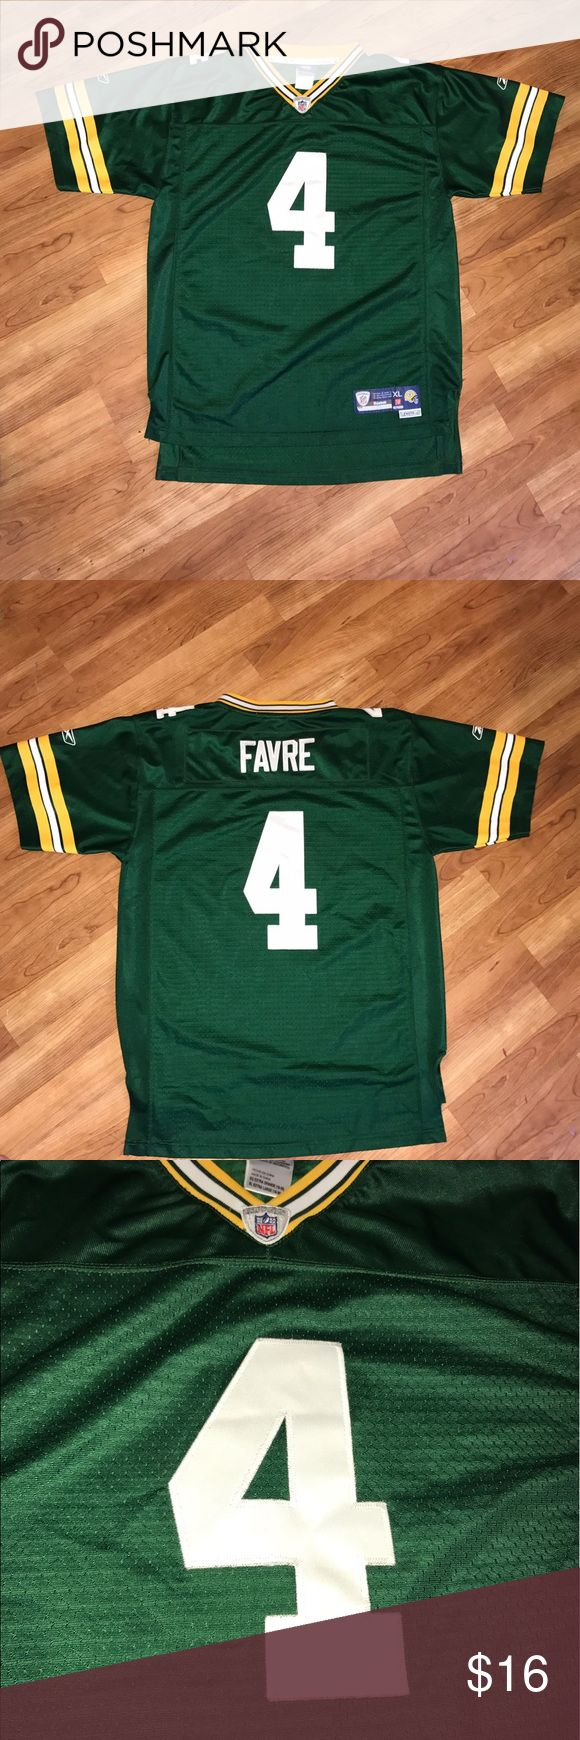 Boy's Reebok Youth Favre Green Bay Packers Jersey For sale is an Brett Favre Green Bay Packers jersey.  The stitched jersey is a kids XL (18-20) and is used.  Comes from a smoke / pet free home.  The jersey jersey is used but is in near perfect shape.   Please see pictures for more details on condition.    The jersey measures 21 inches from arm pit to arm pit, 18 inches from arm pit to bottom, and 29.5 inches from top to bottom. Reebok Shirts & Tops